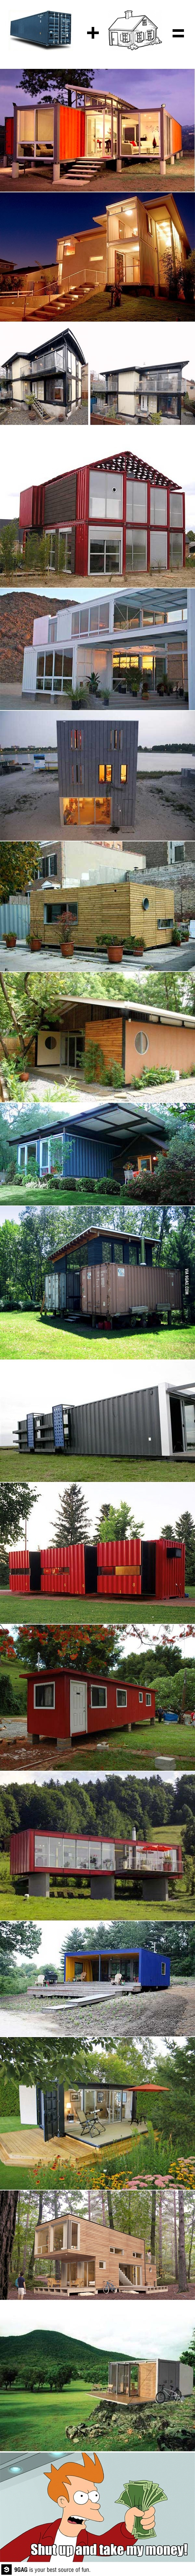 best casa images on pinterest container houses small houses